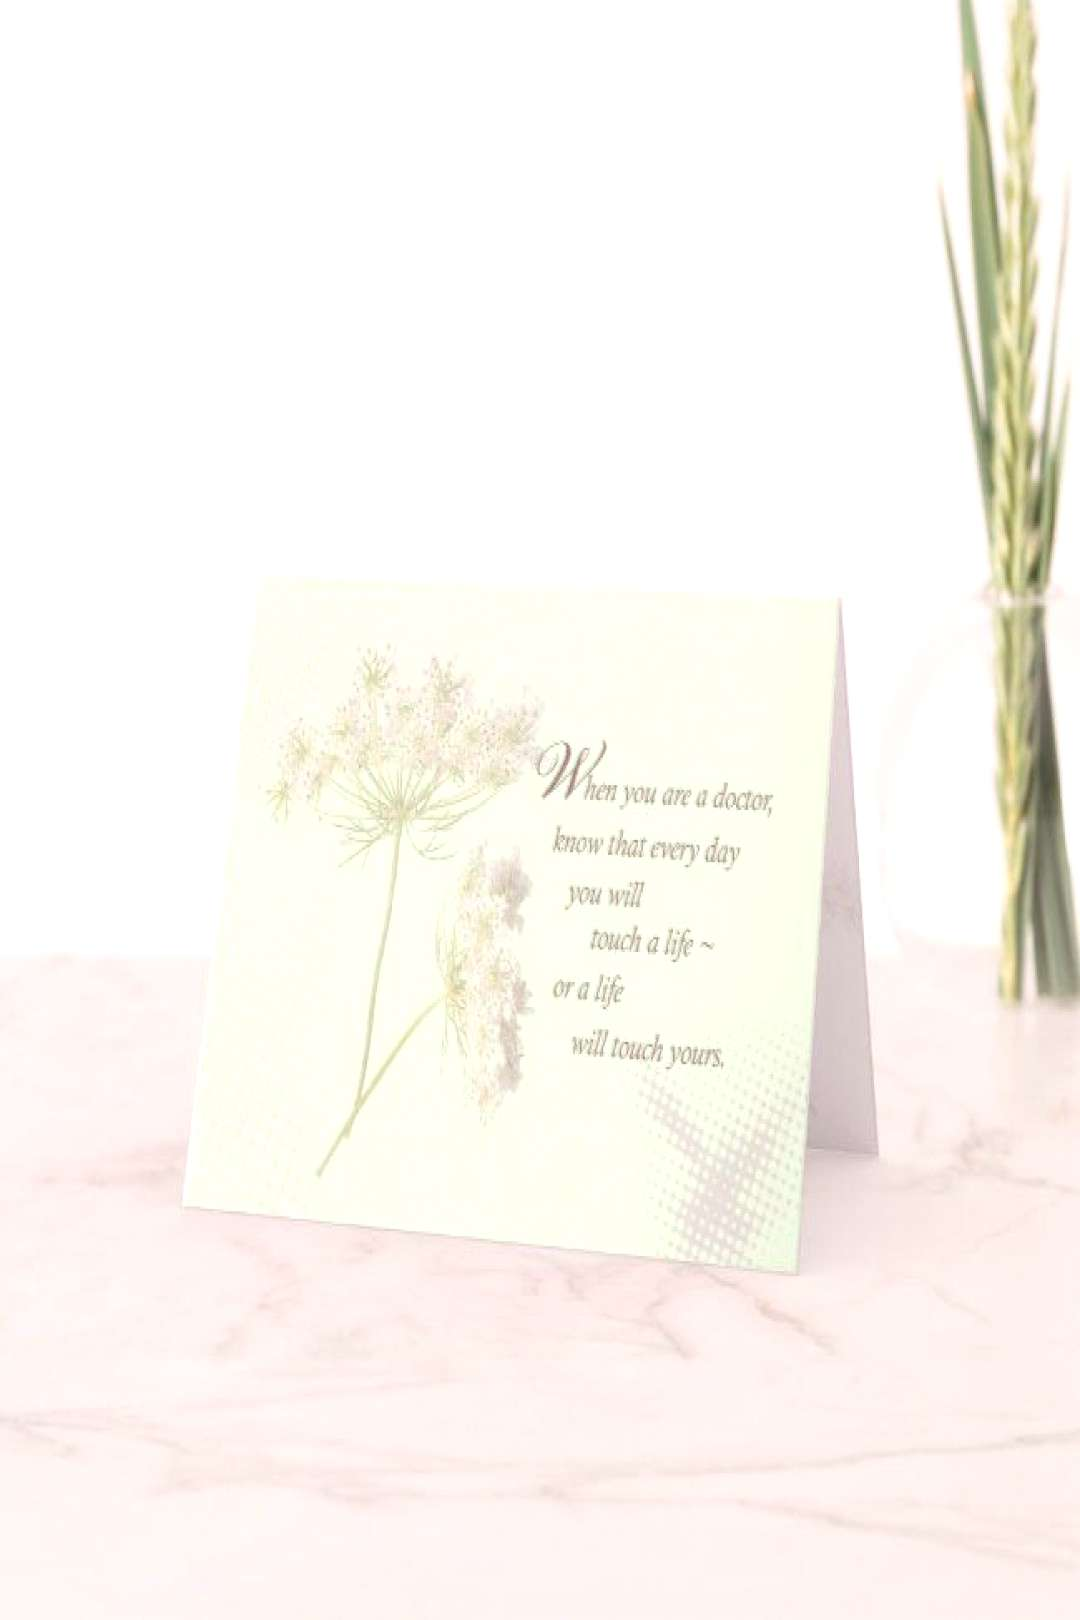 Doctors Touch Lives Wildflower Card